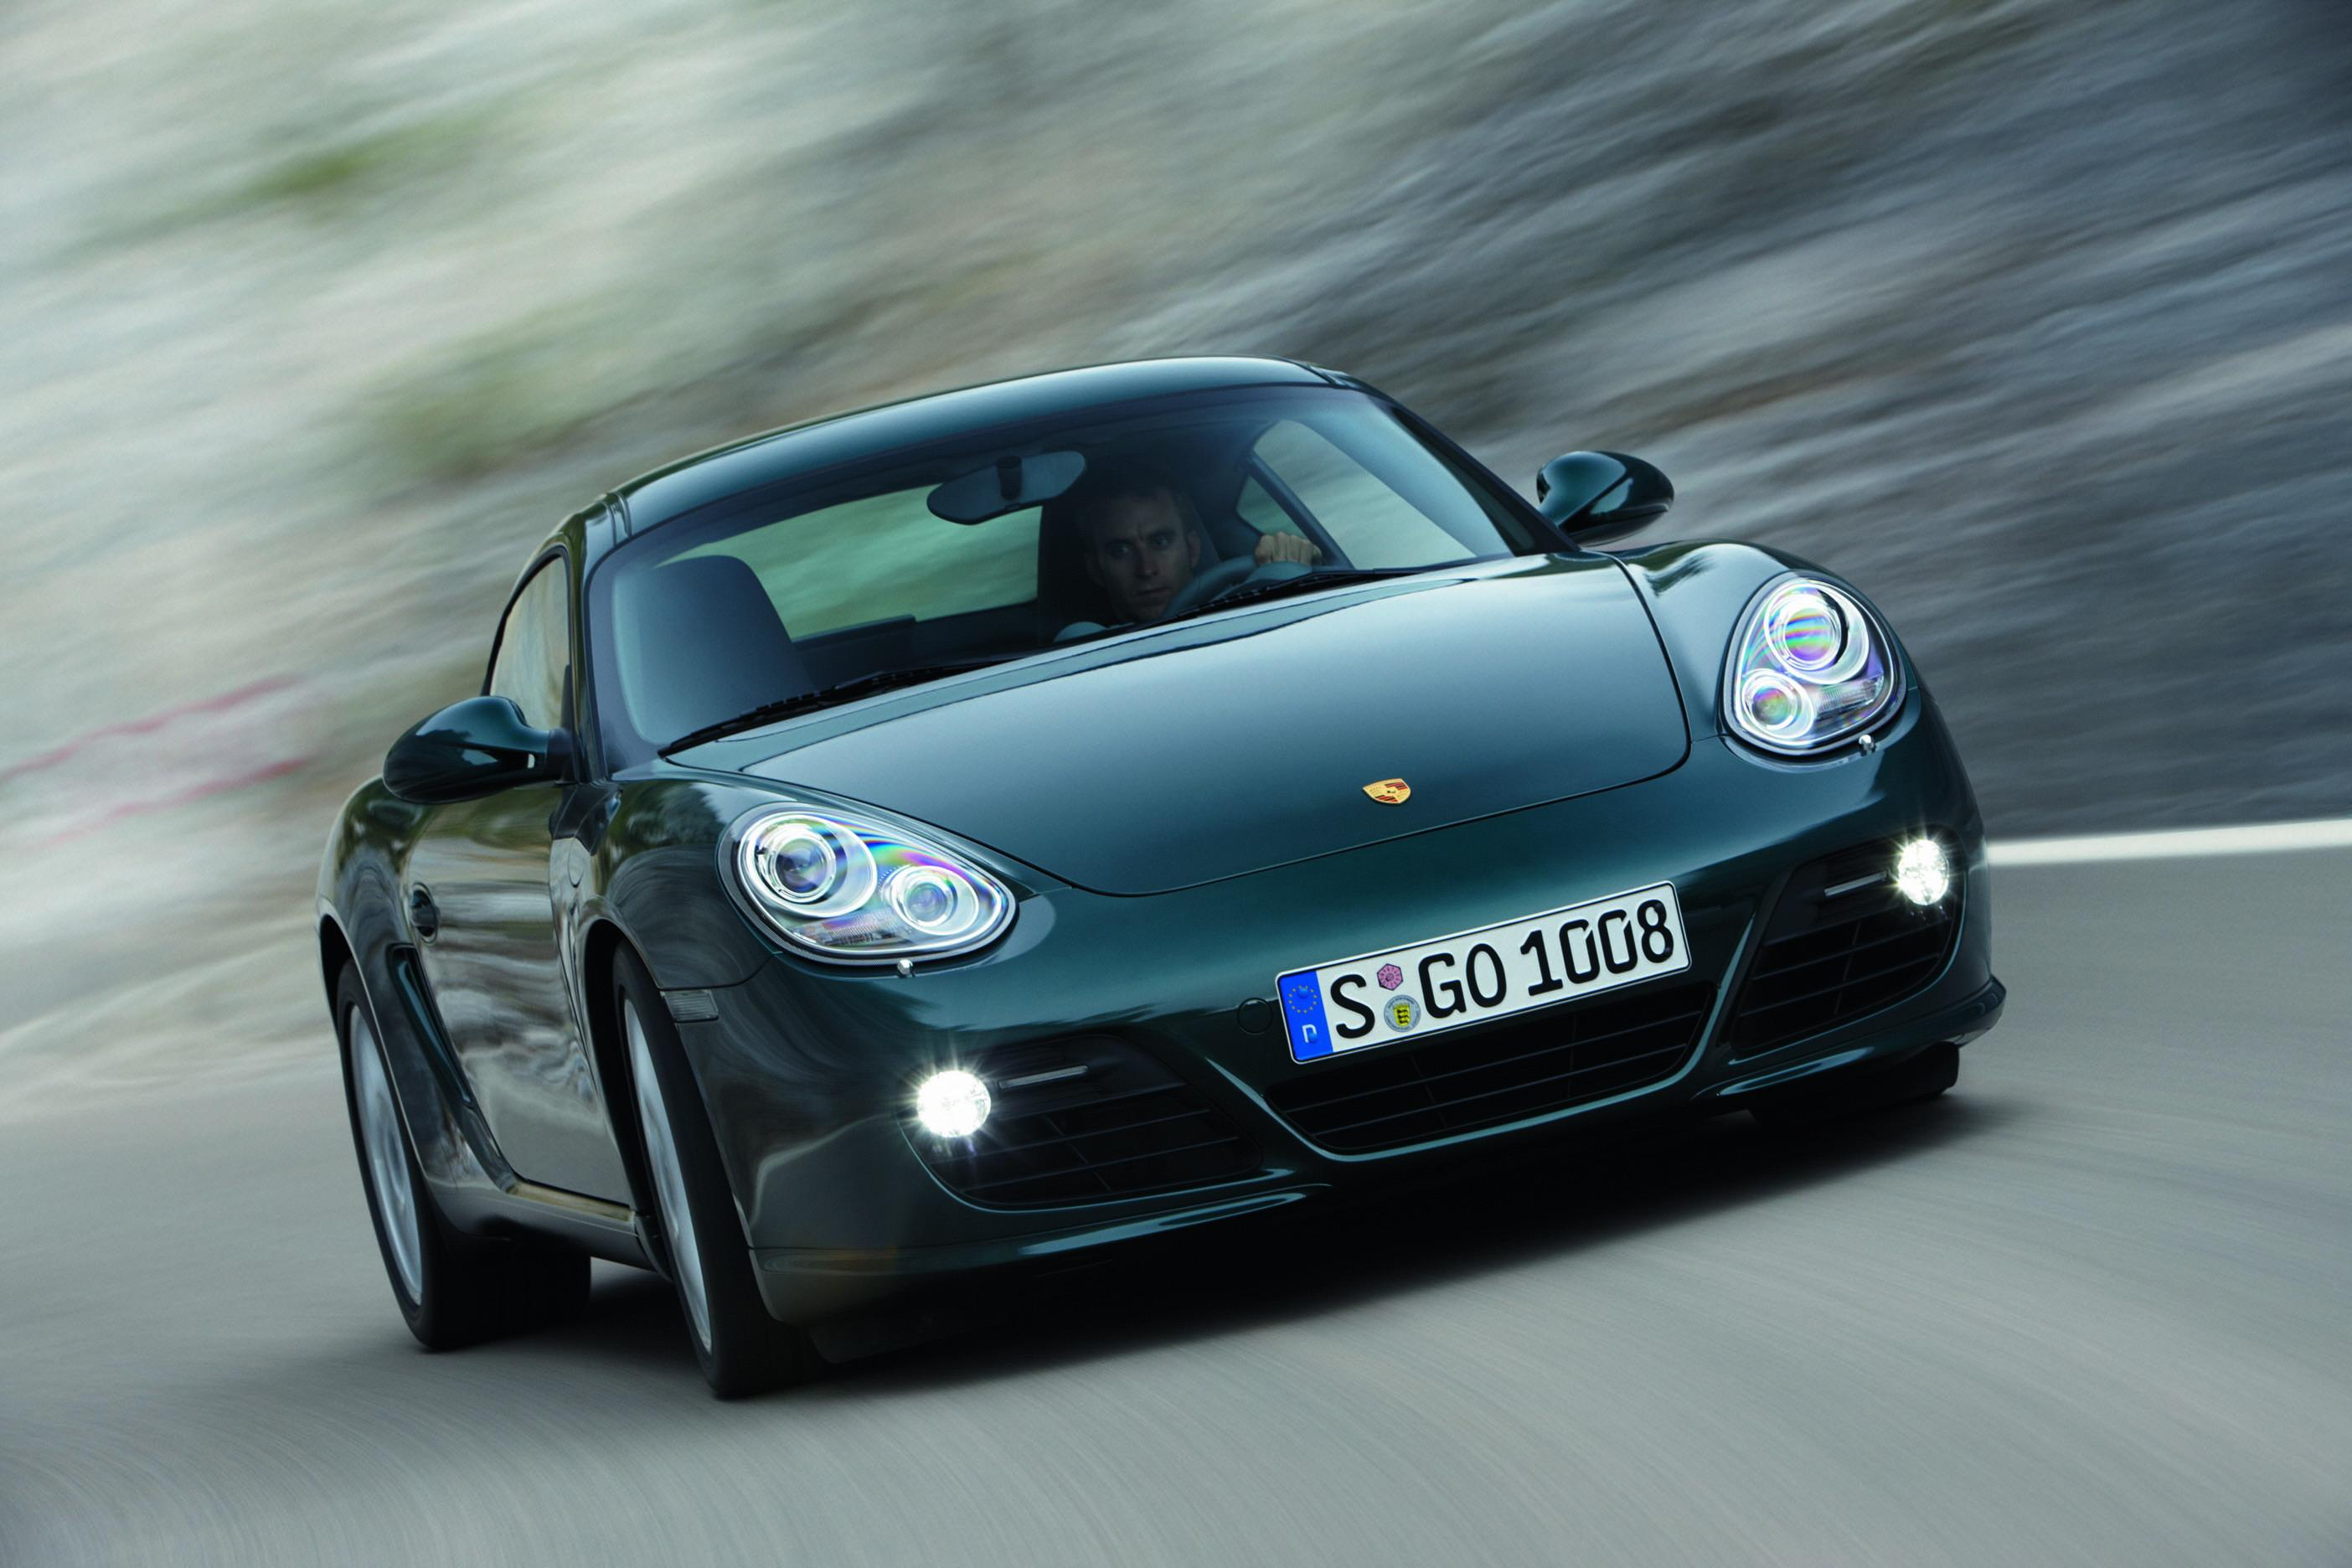 Porsche Boxster News And Reviews Top Speed 2006 Fuse Diagram 2009 Cayman